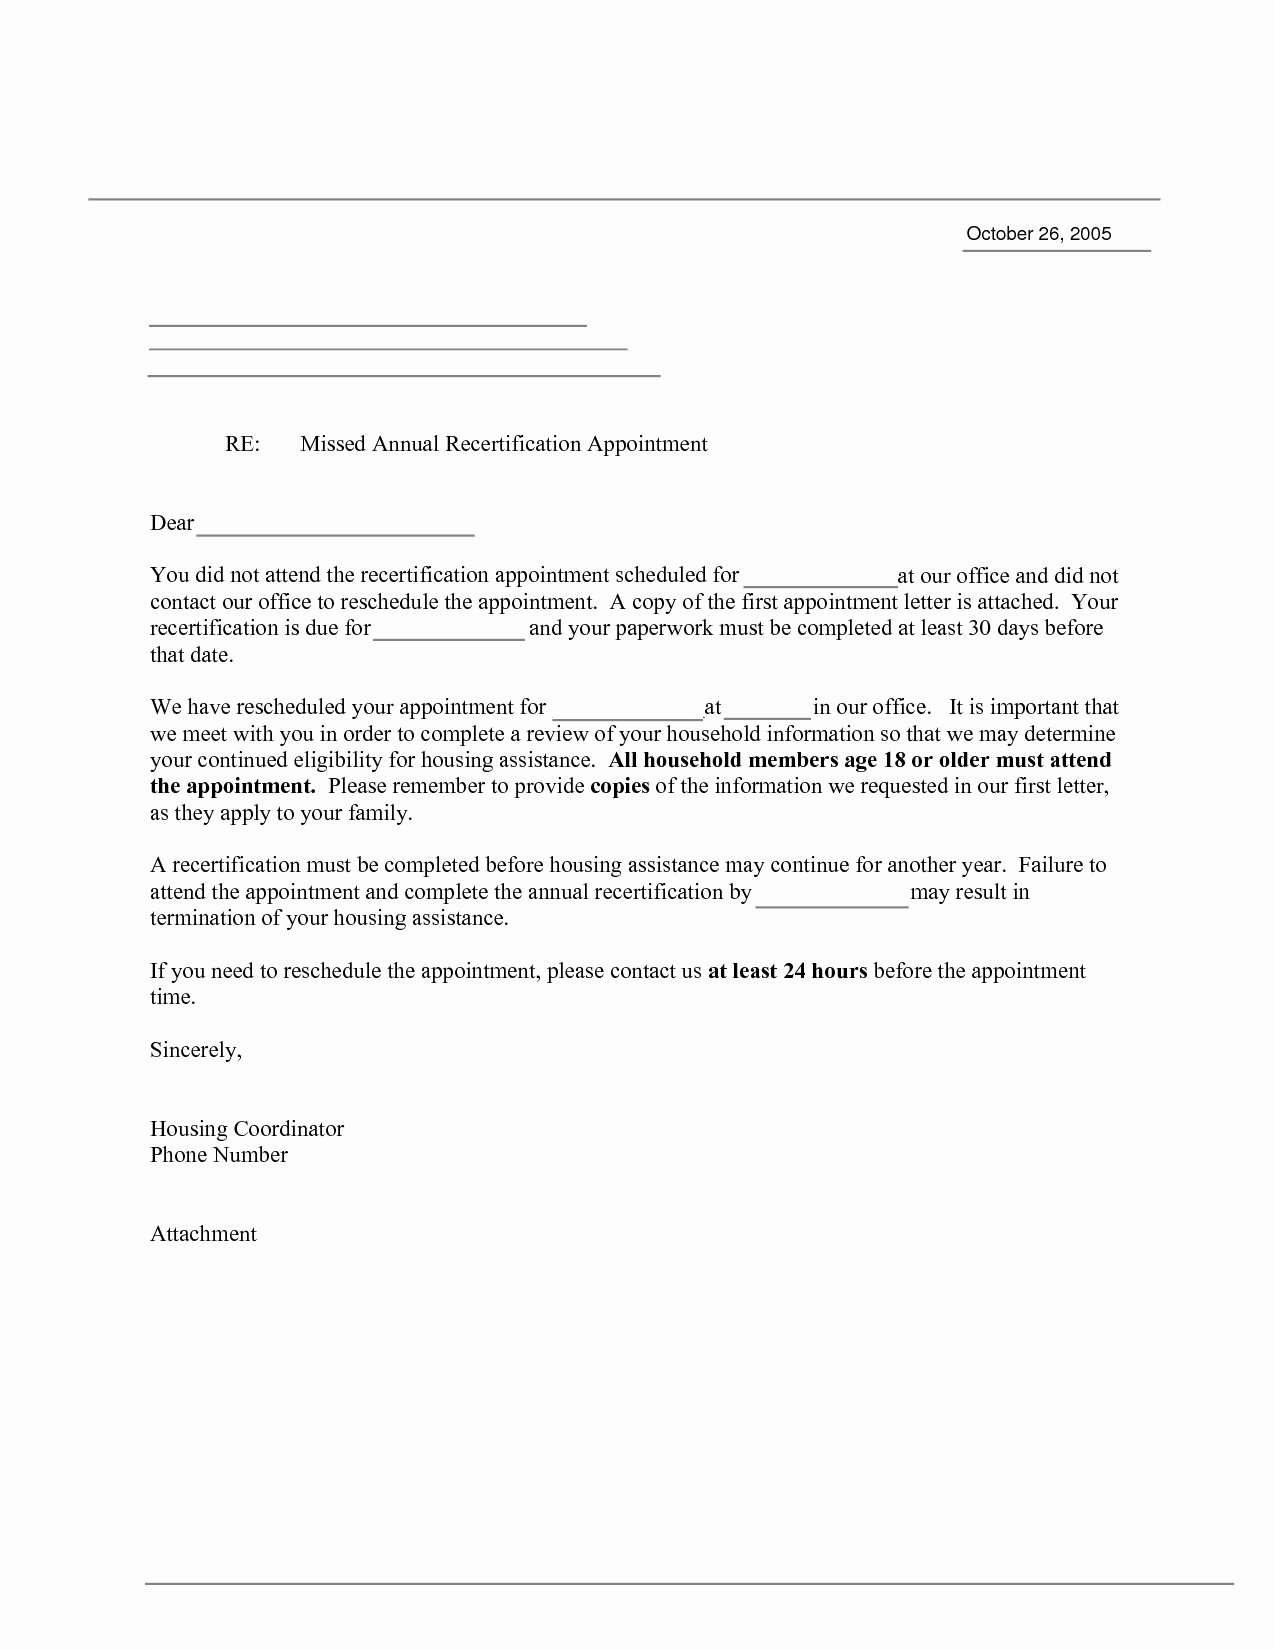 Follow Up Doctor Appointment Letter Best Of Missed Appointment Email Template